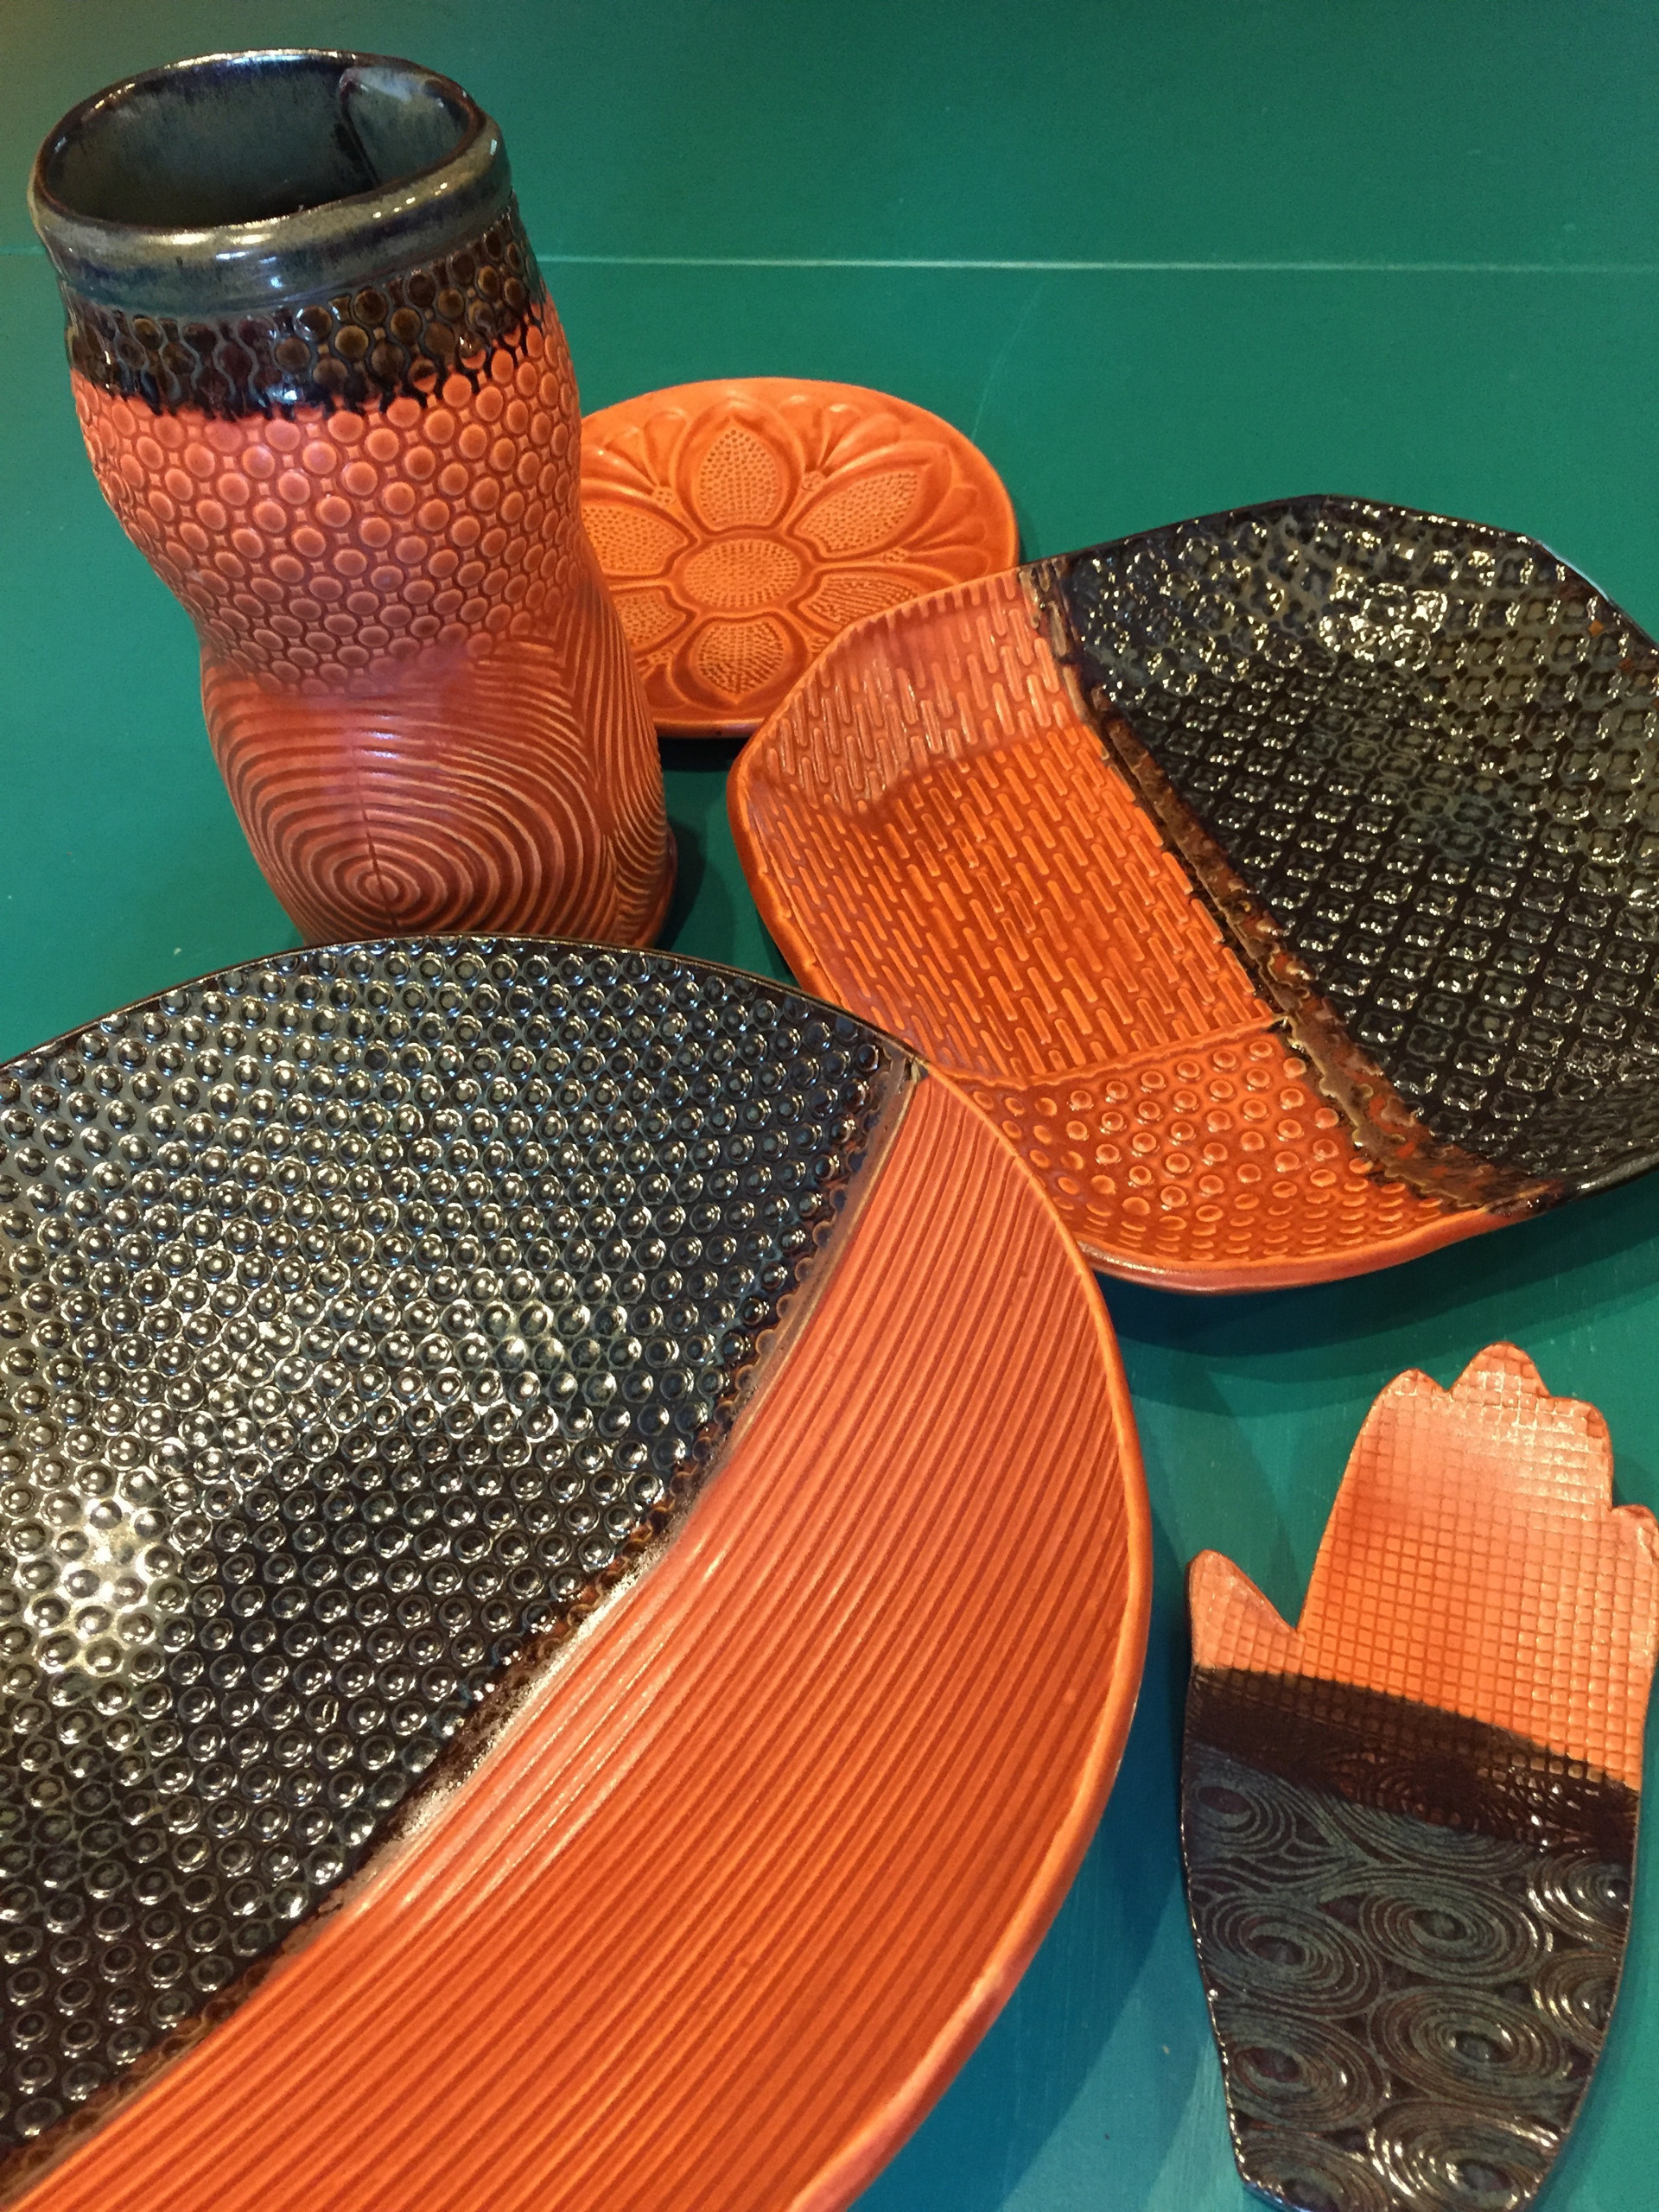 Assorted textured pottery